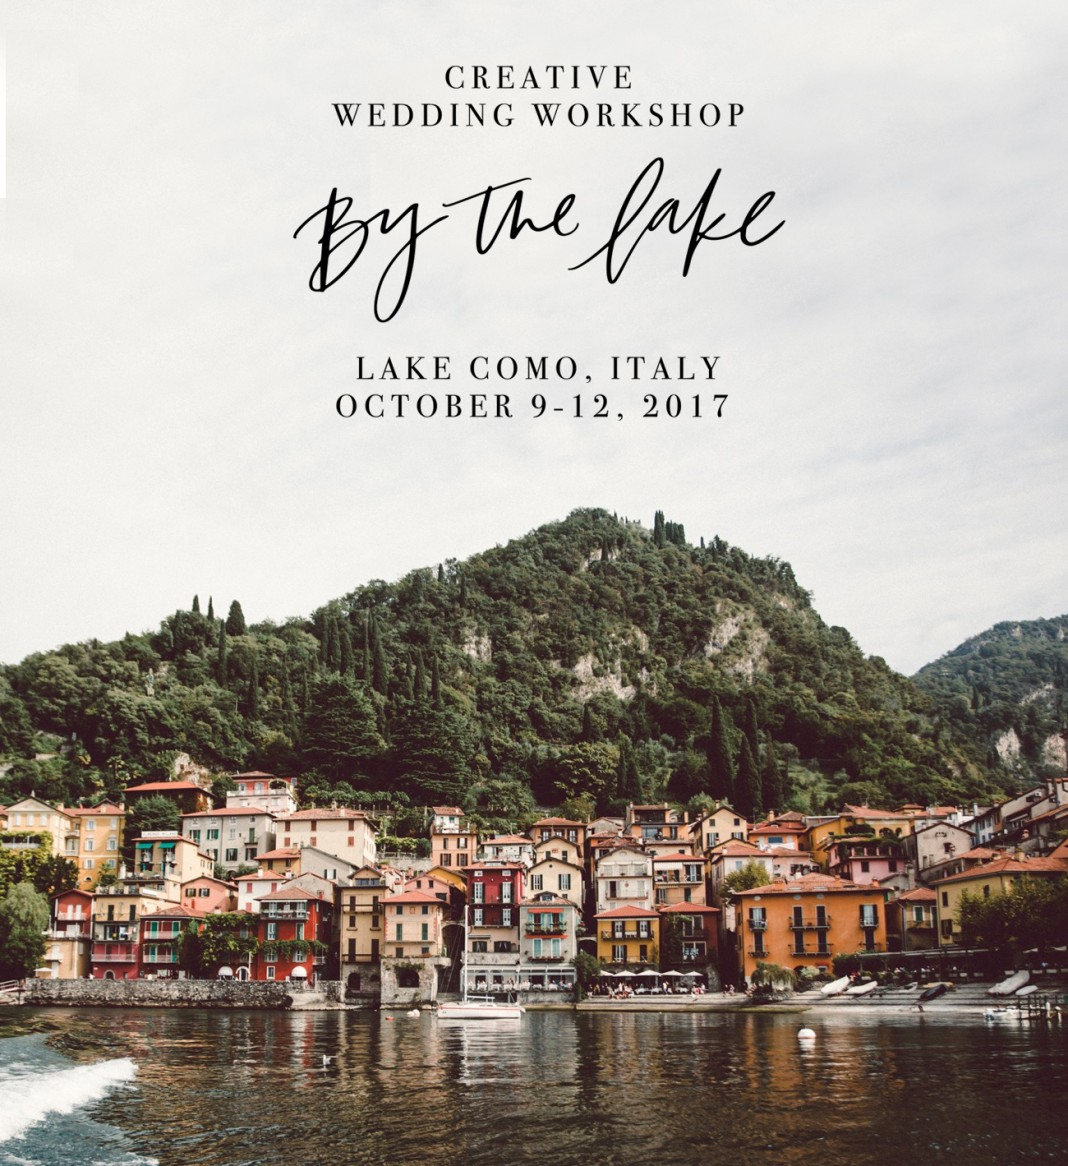 Join GWS in Lake Como at the By The Lake Workshop!